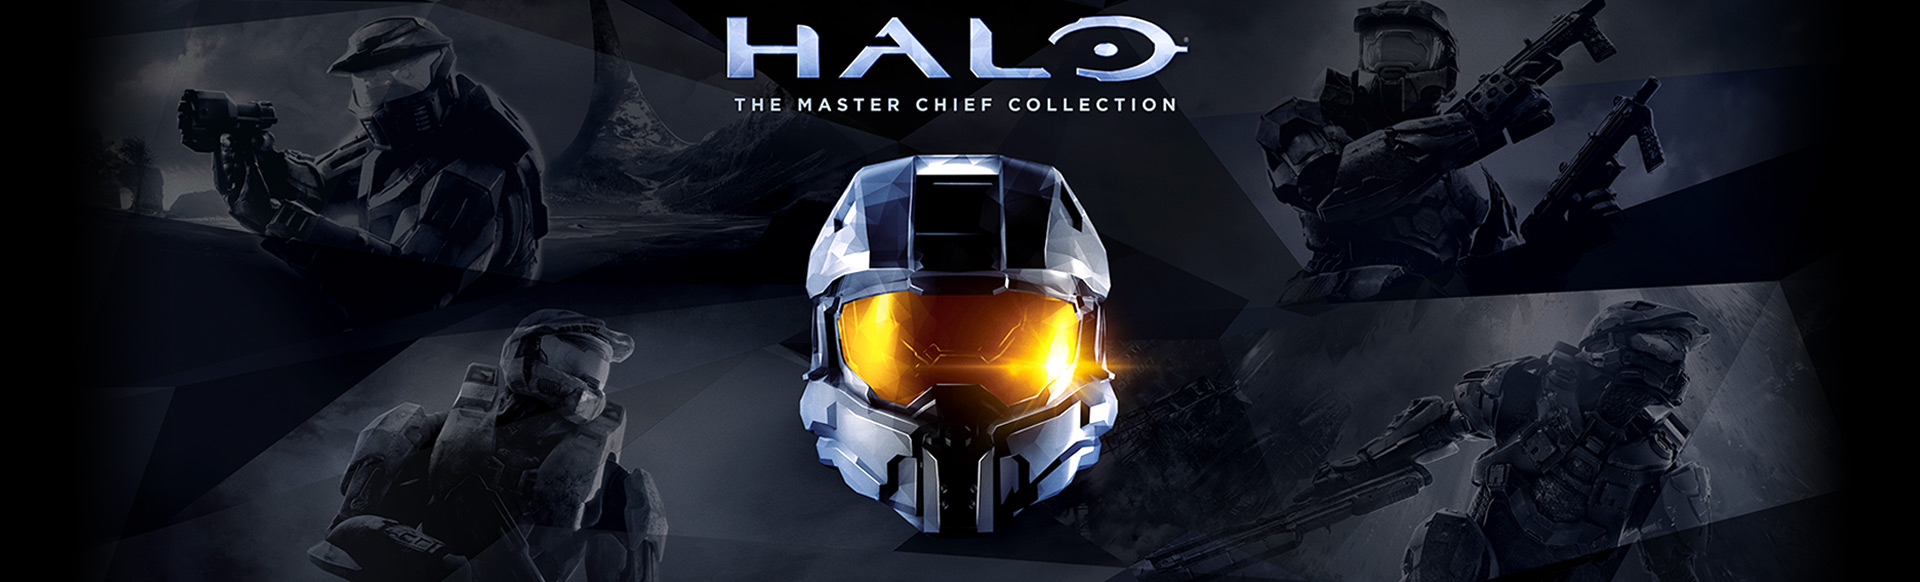 Halo the Master Chief Collection – Buy Now